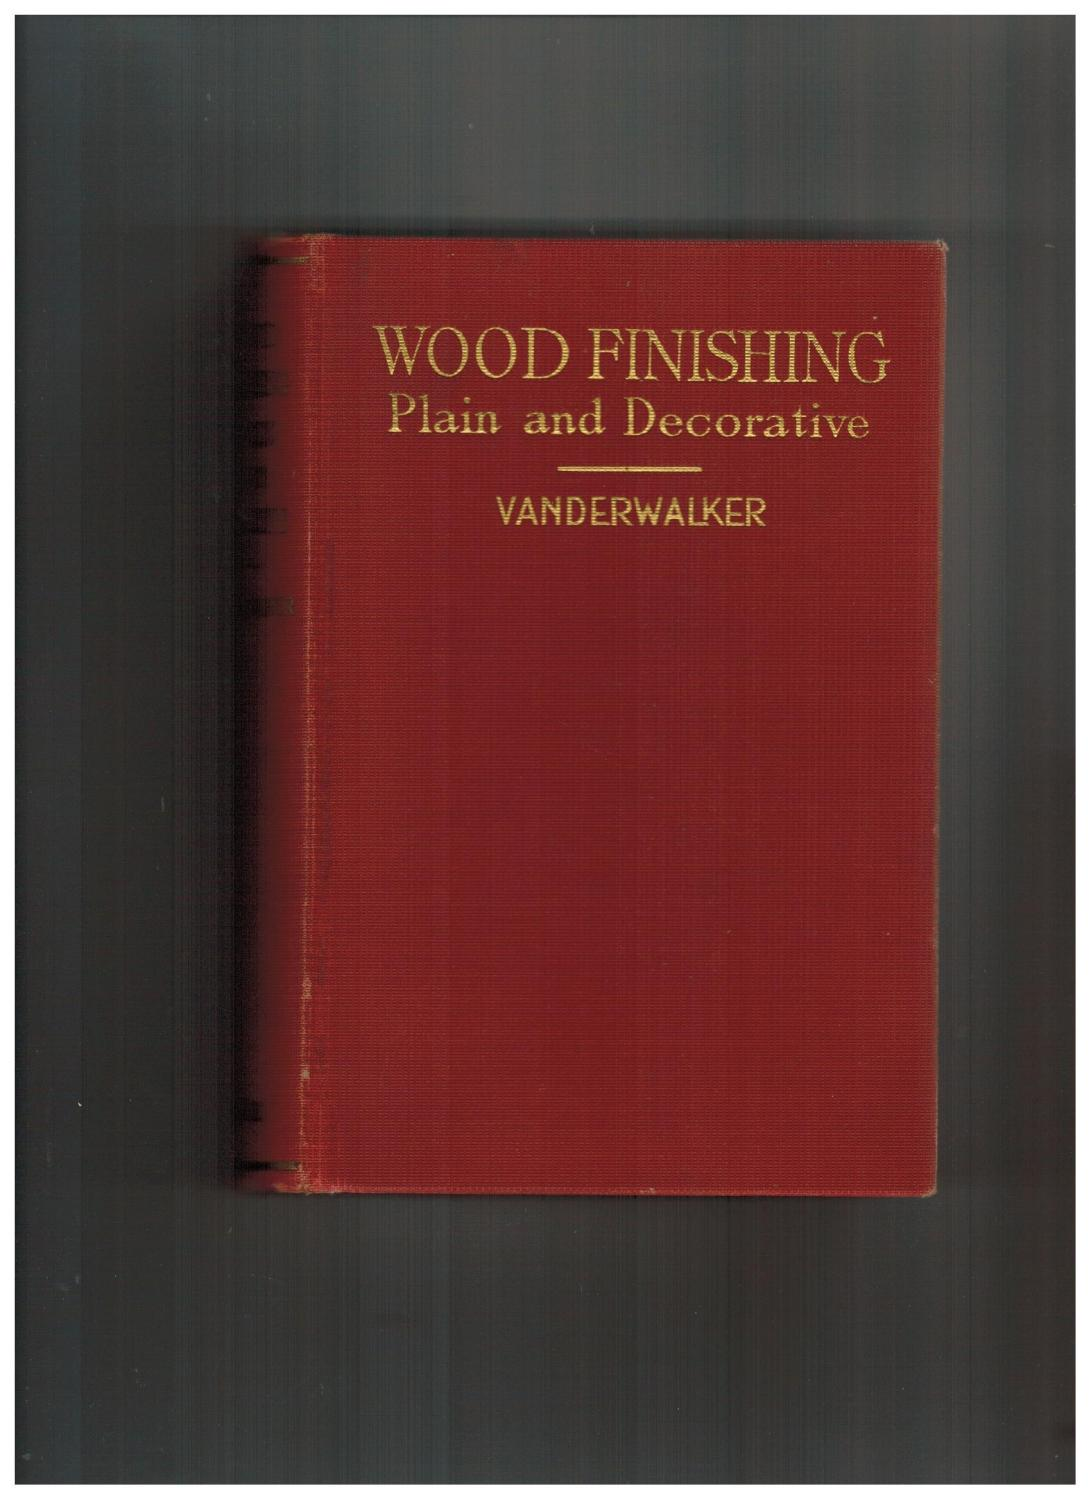 Wood Finishing Plain And Decorative Methods Materials And Tools